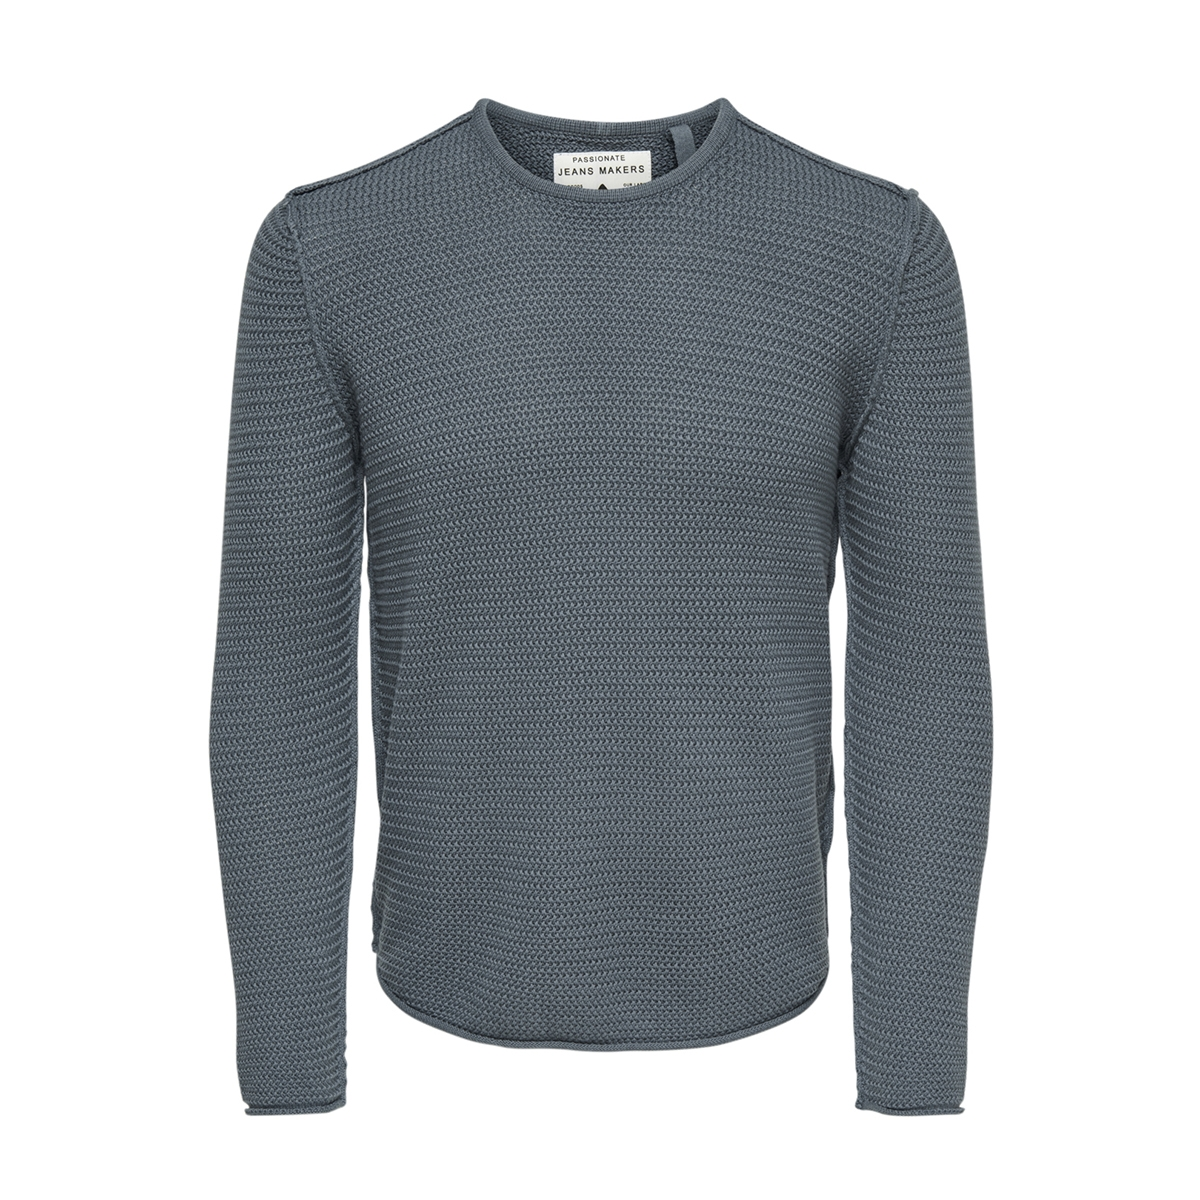 onstrough knit sl 3108 22013108 only & sons trui smoke blue